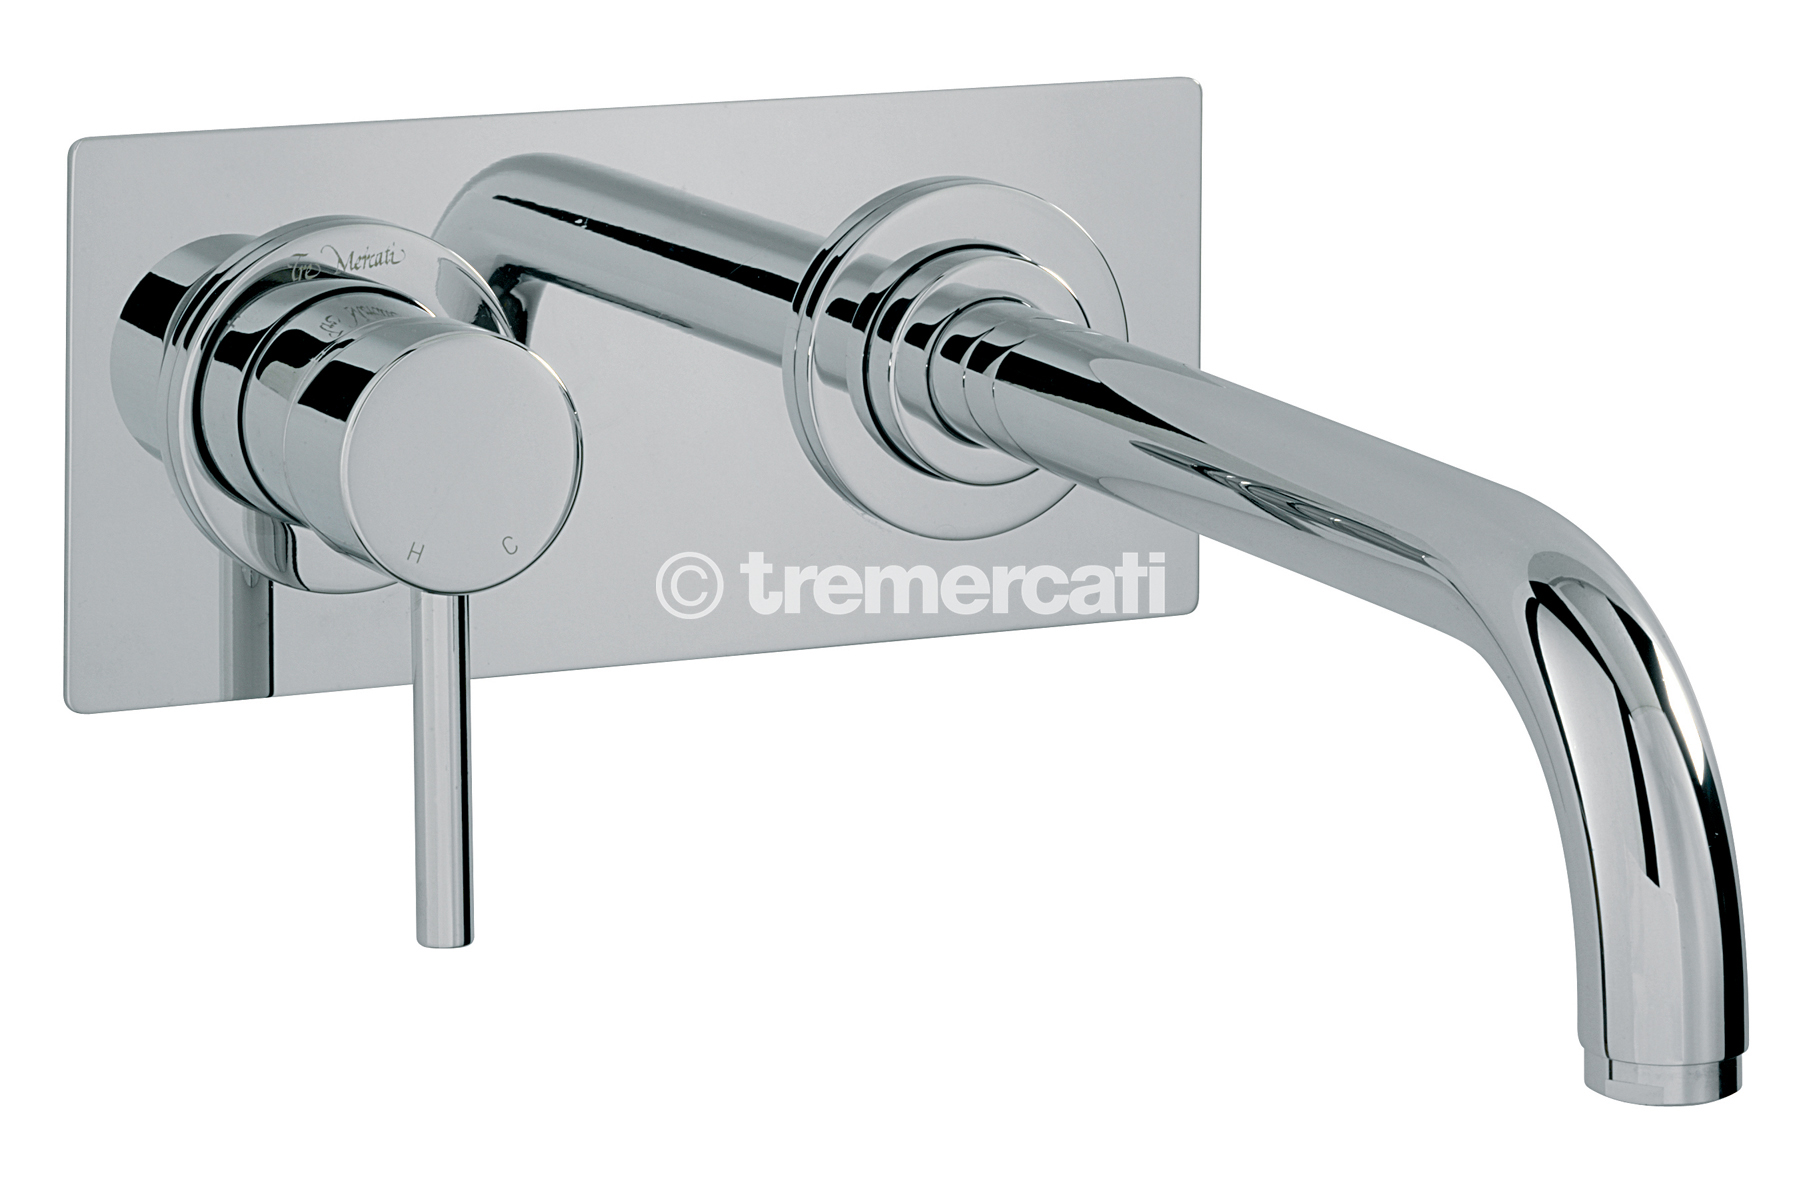 TRE MERCATI MILAN 2 HOLE WALL MOUNTED BATH FILLER - CHROME PLATED